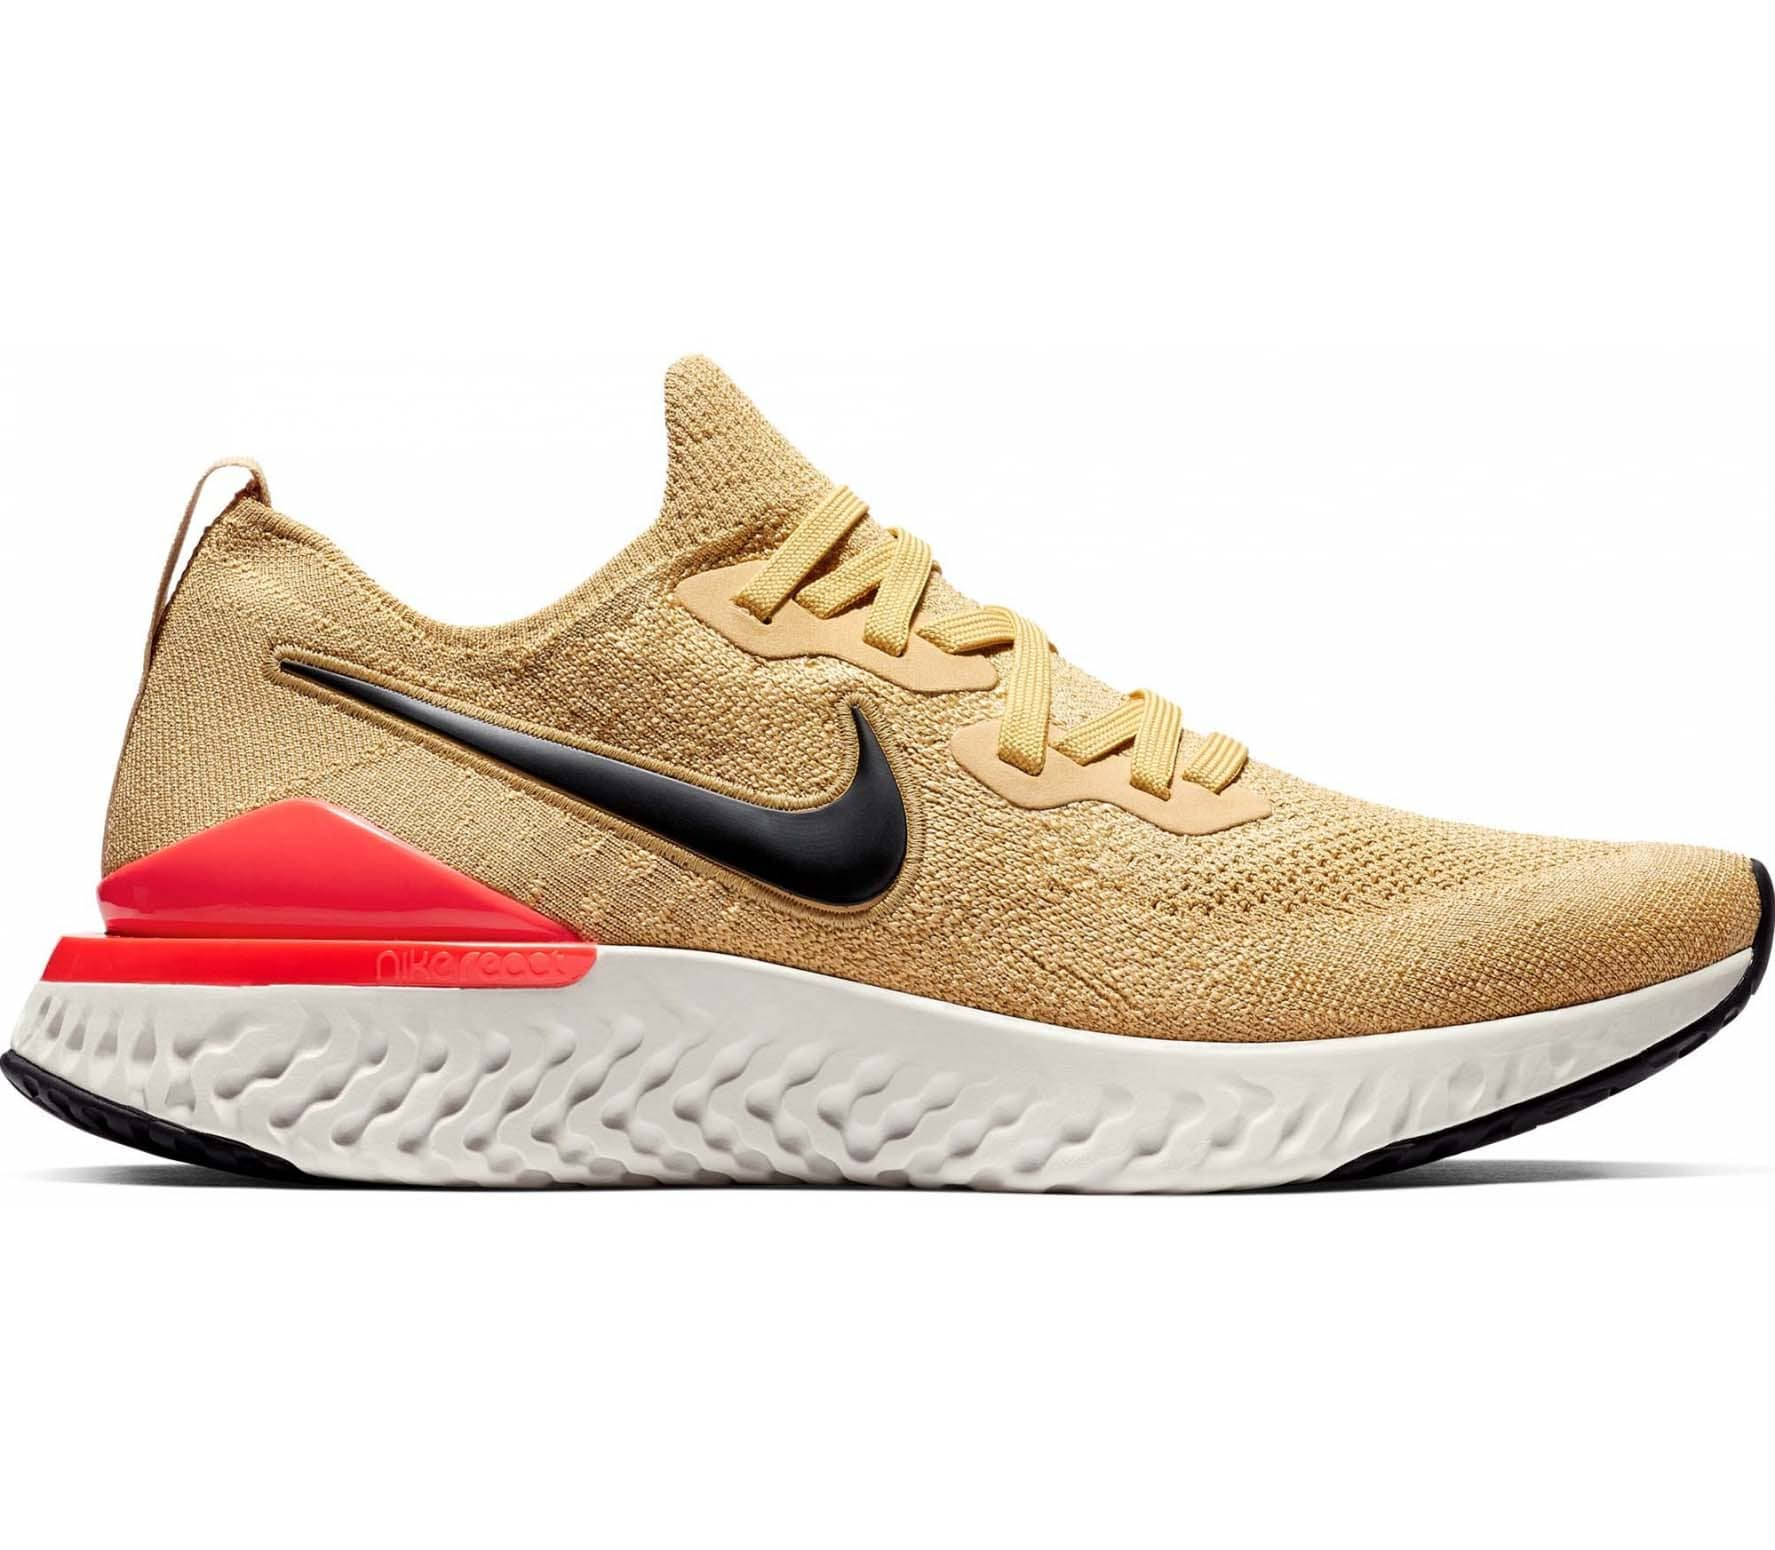 a2d228f47c70 Nike - Epic React Flyknit 2 men s running shoes (gold orange) - buy ...